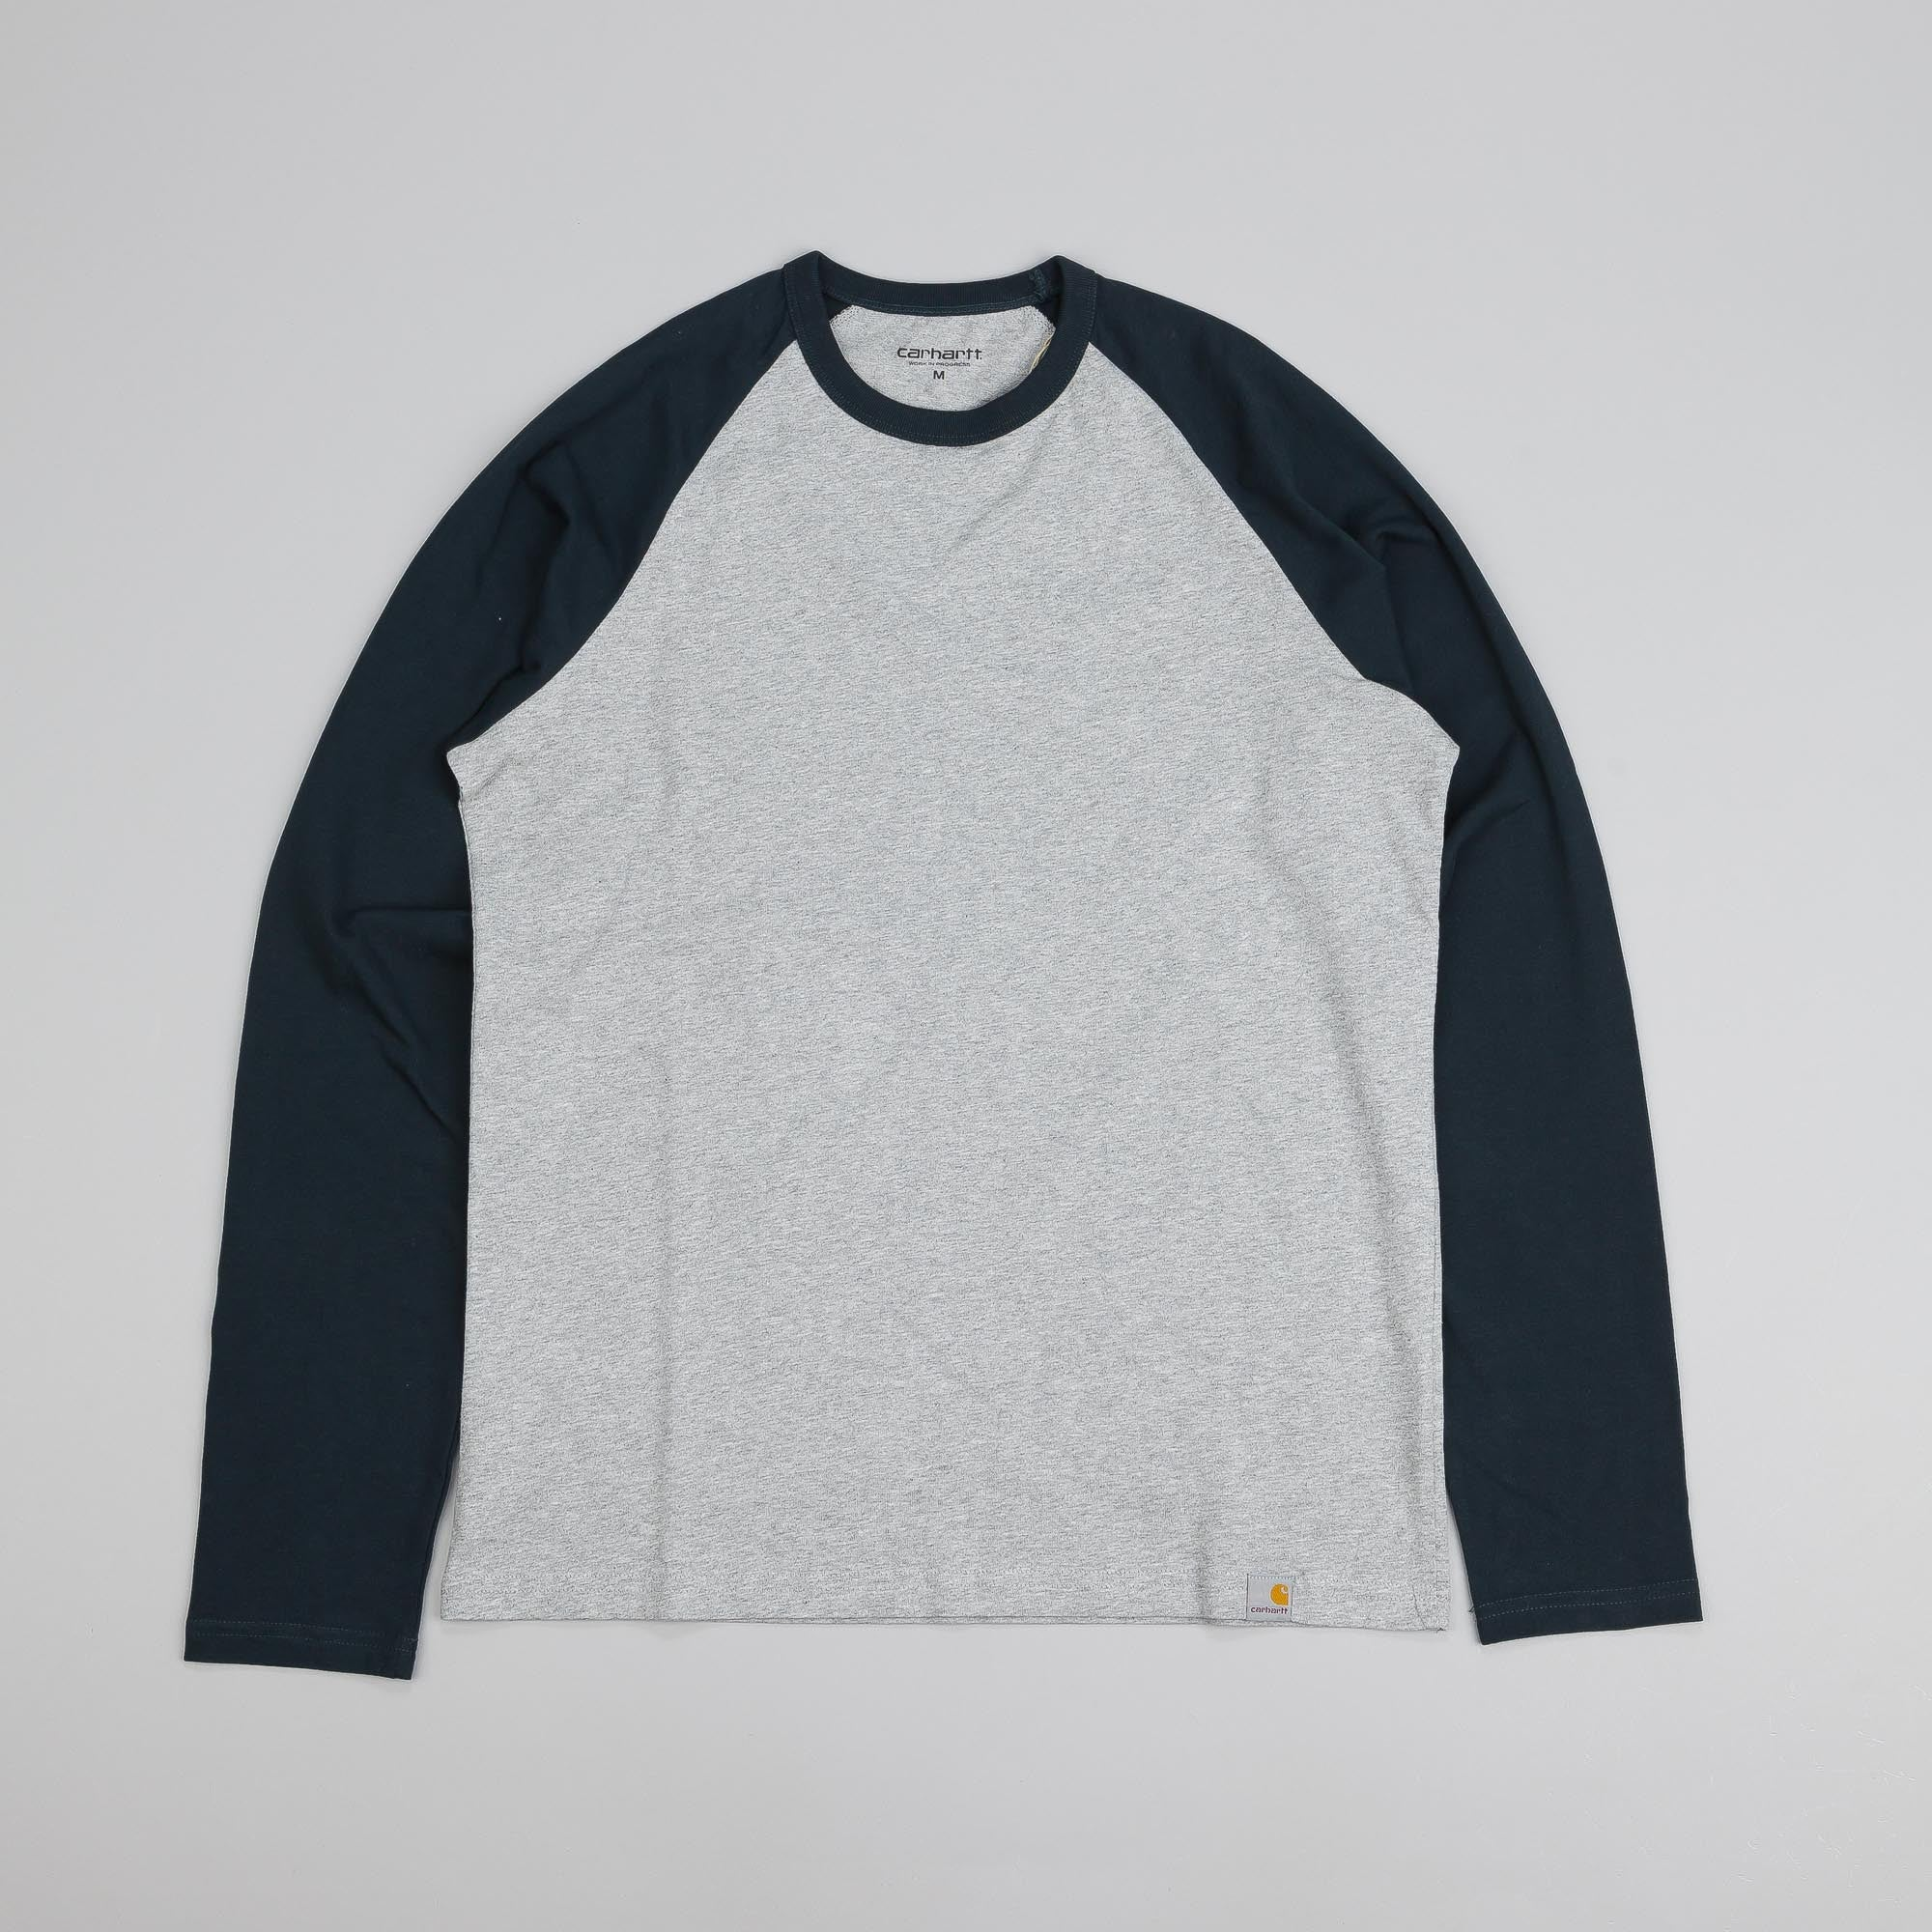 Carhartt Long Sleeve Dodgers T Shirt Grey Heather / Dark Petrol